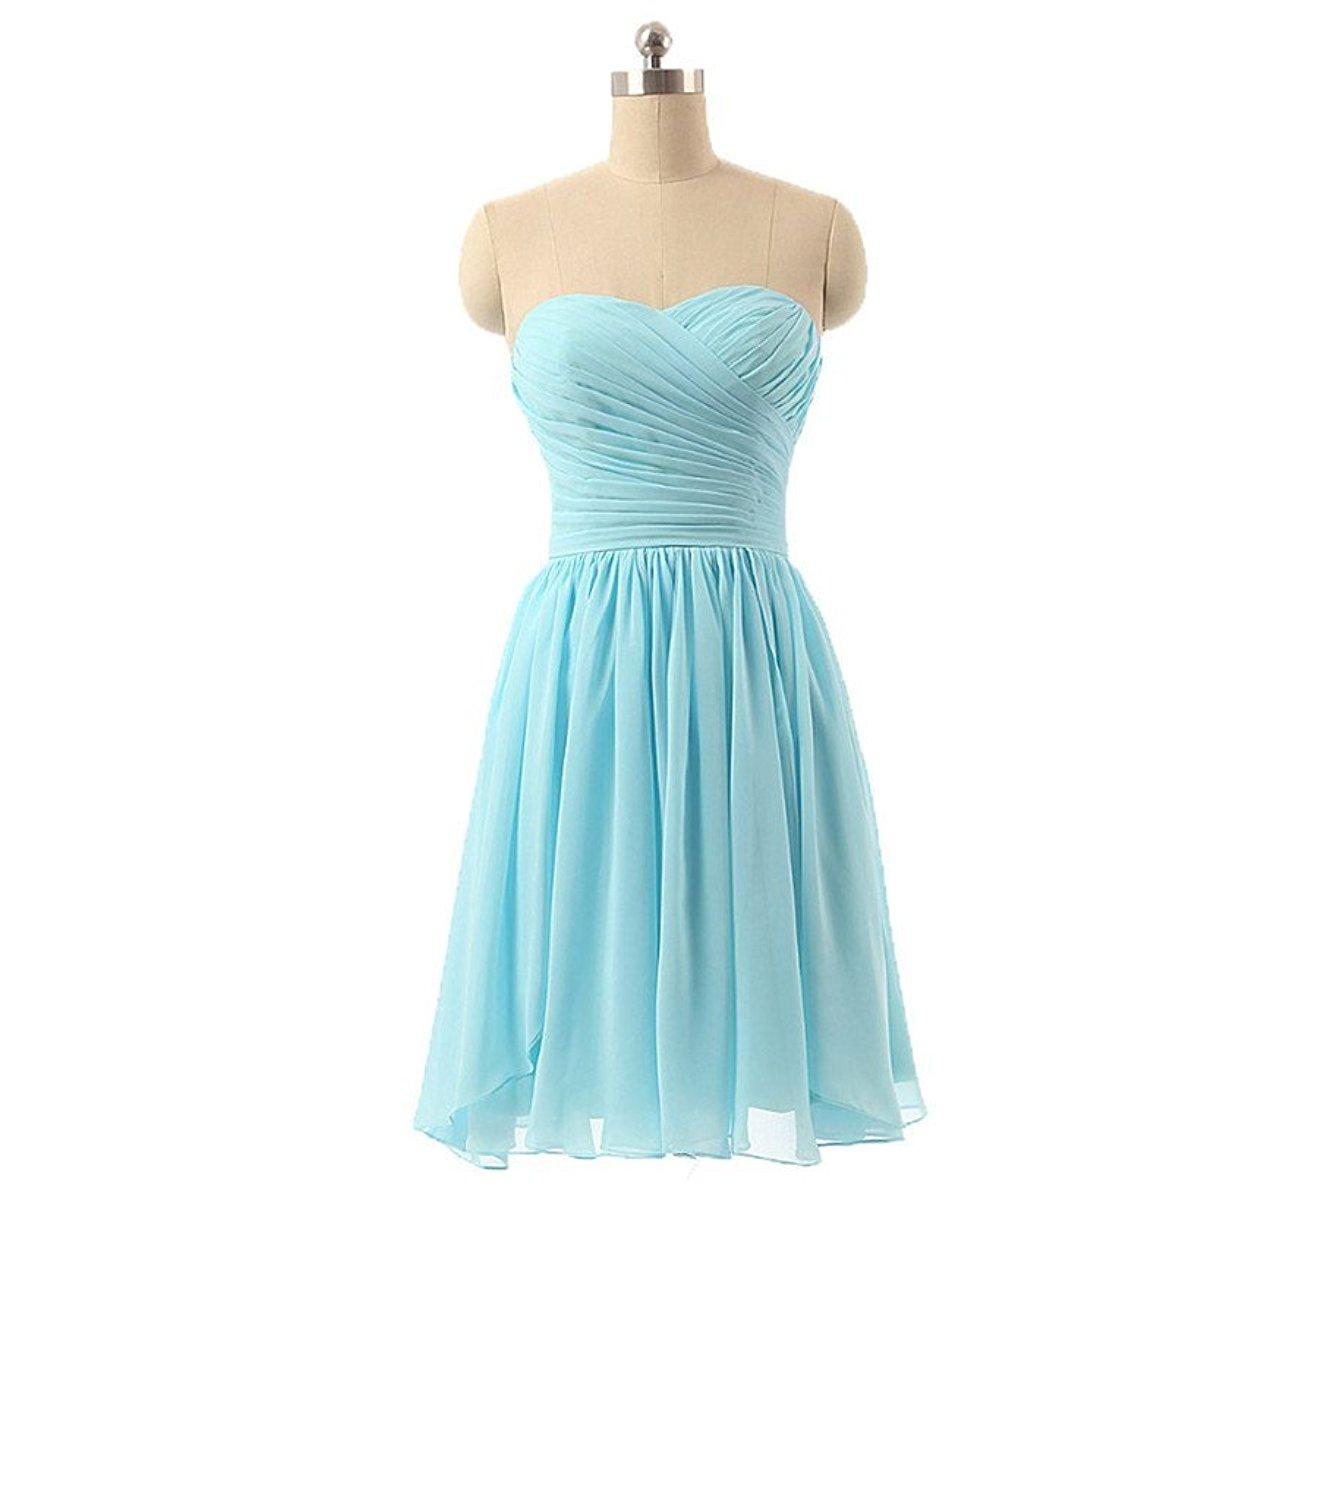 Dormencir Strapless Ruched Chiffon Short Junior Bridesmaid Wedding ...